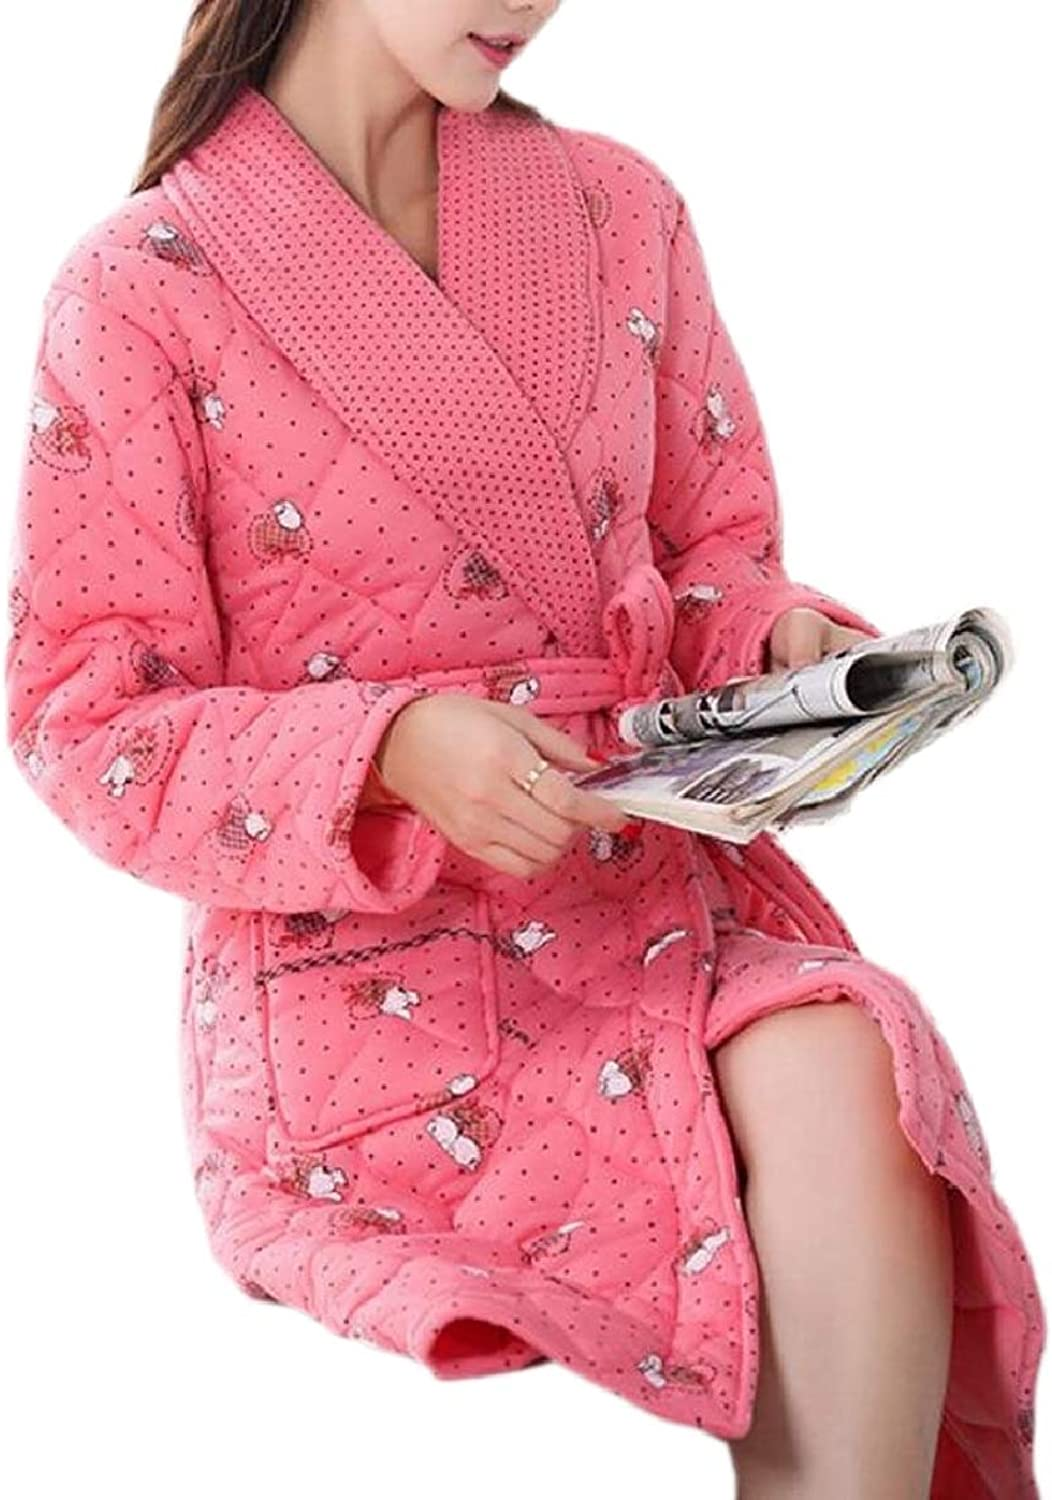 CBTLVSN Women's Thick Quilted Print Lapel Comfort Home Wear Bathrobe Robe